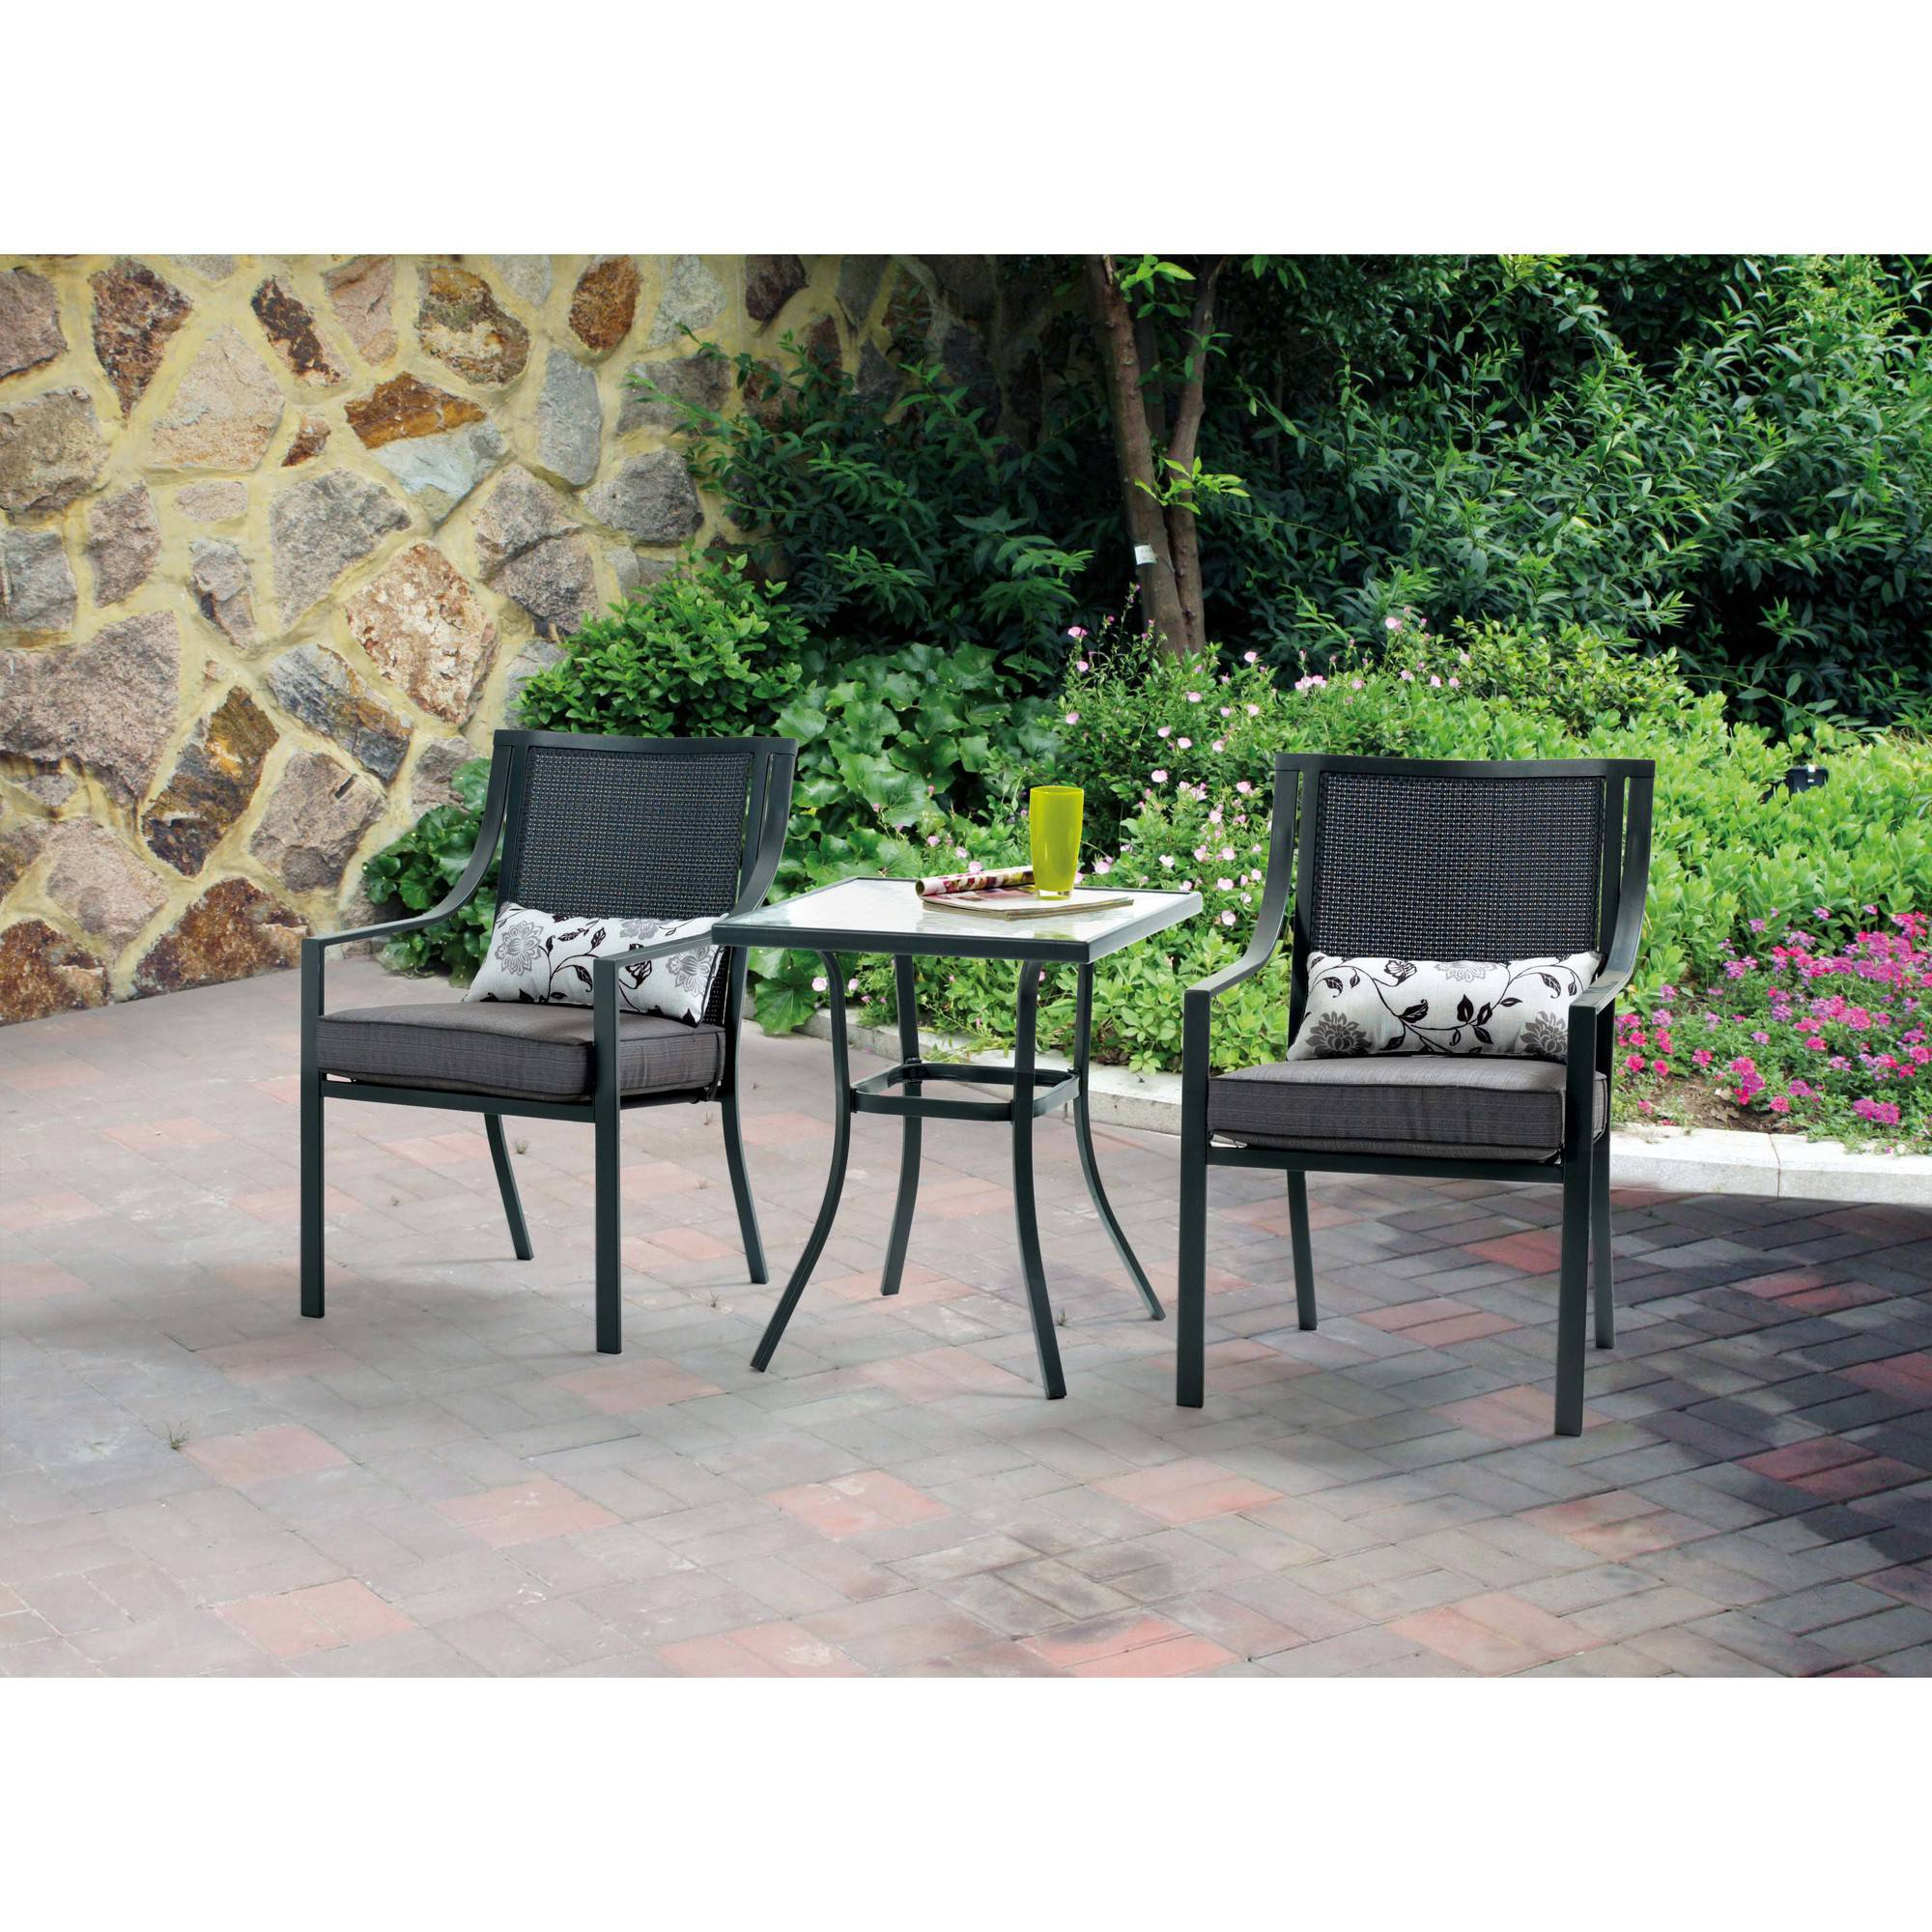 mainstays alexandra square 3 piece outdoor bistro set grey with leaves seats 2 walmartcom - Garden Furniture 3 Piece